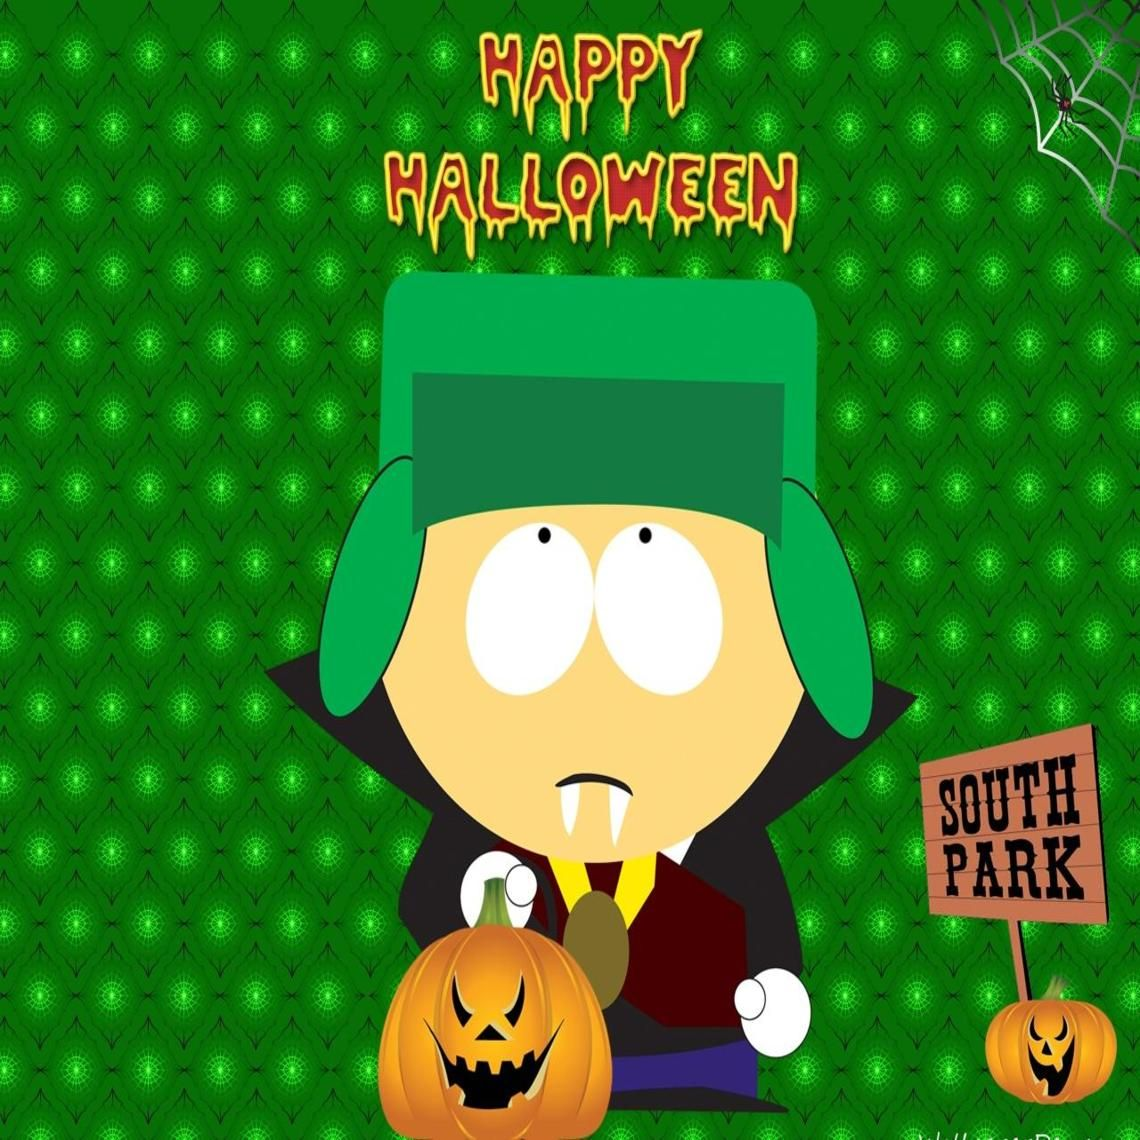 SOUTH PARK HALLOWEEN | Kyle Broflovski | Pinterest | South park ...